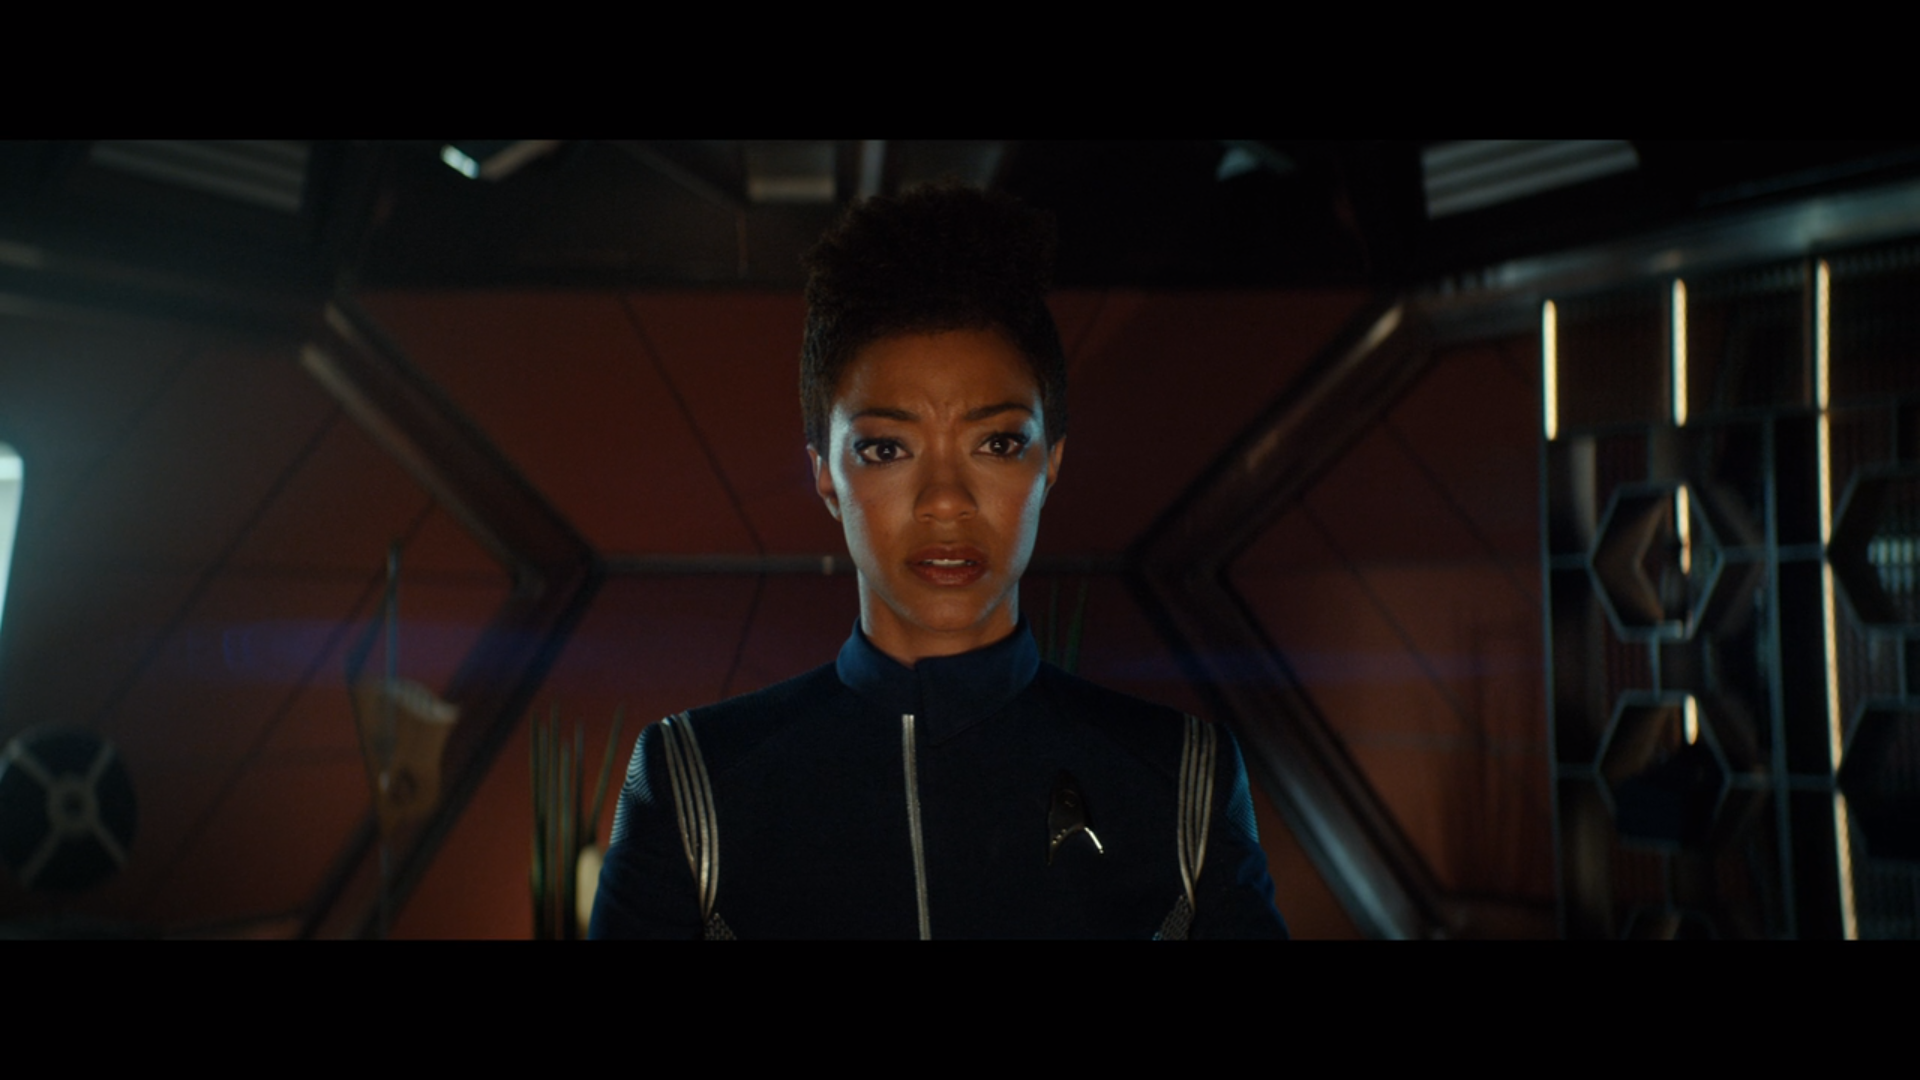 'Star Trek: Discovery's Season 2 Premiere 'Brother' Jumps The Shark By Being Pretty Good, Actually